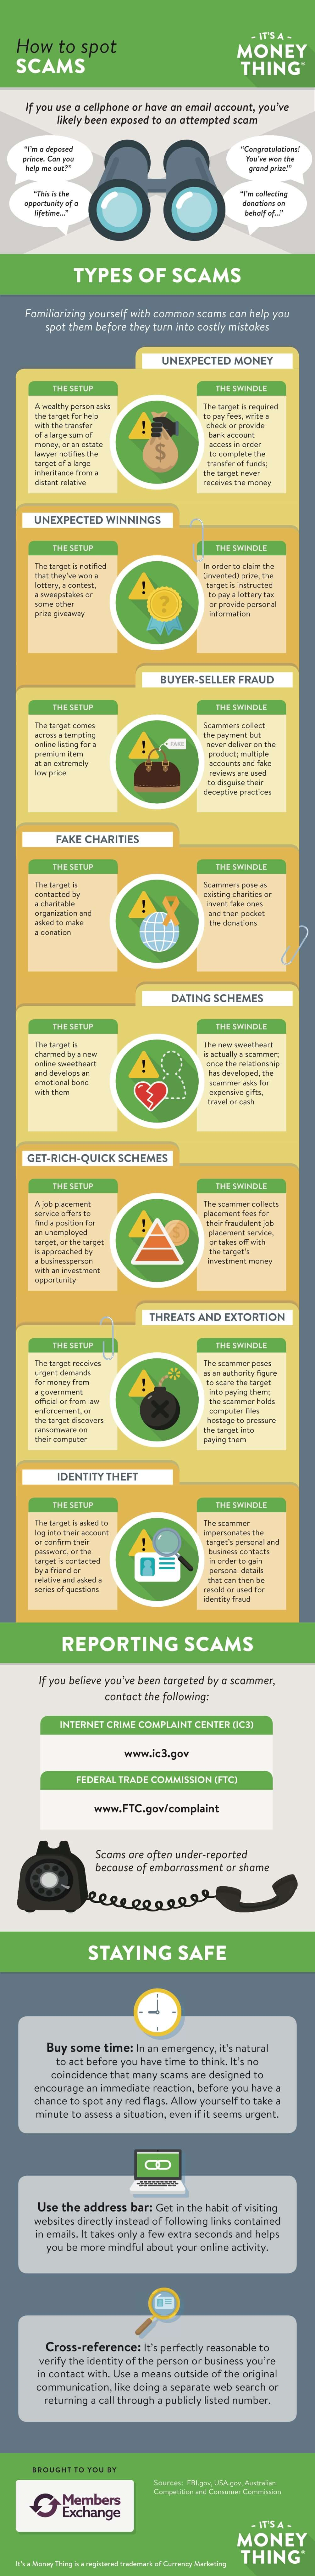 This infographic is about how to spot scams. A full text version is available below.